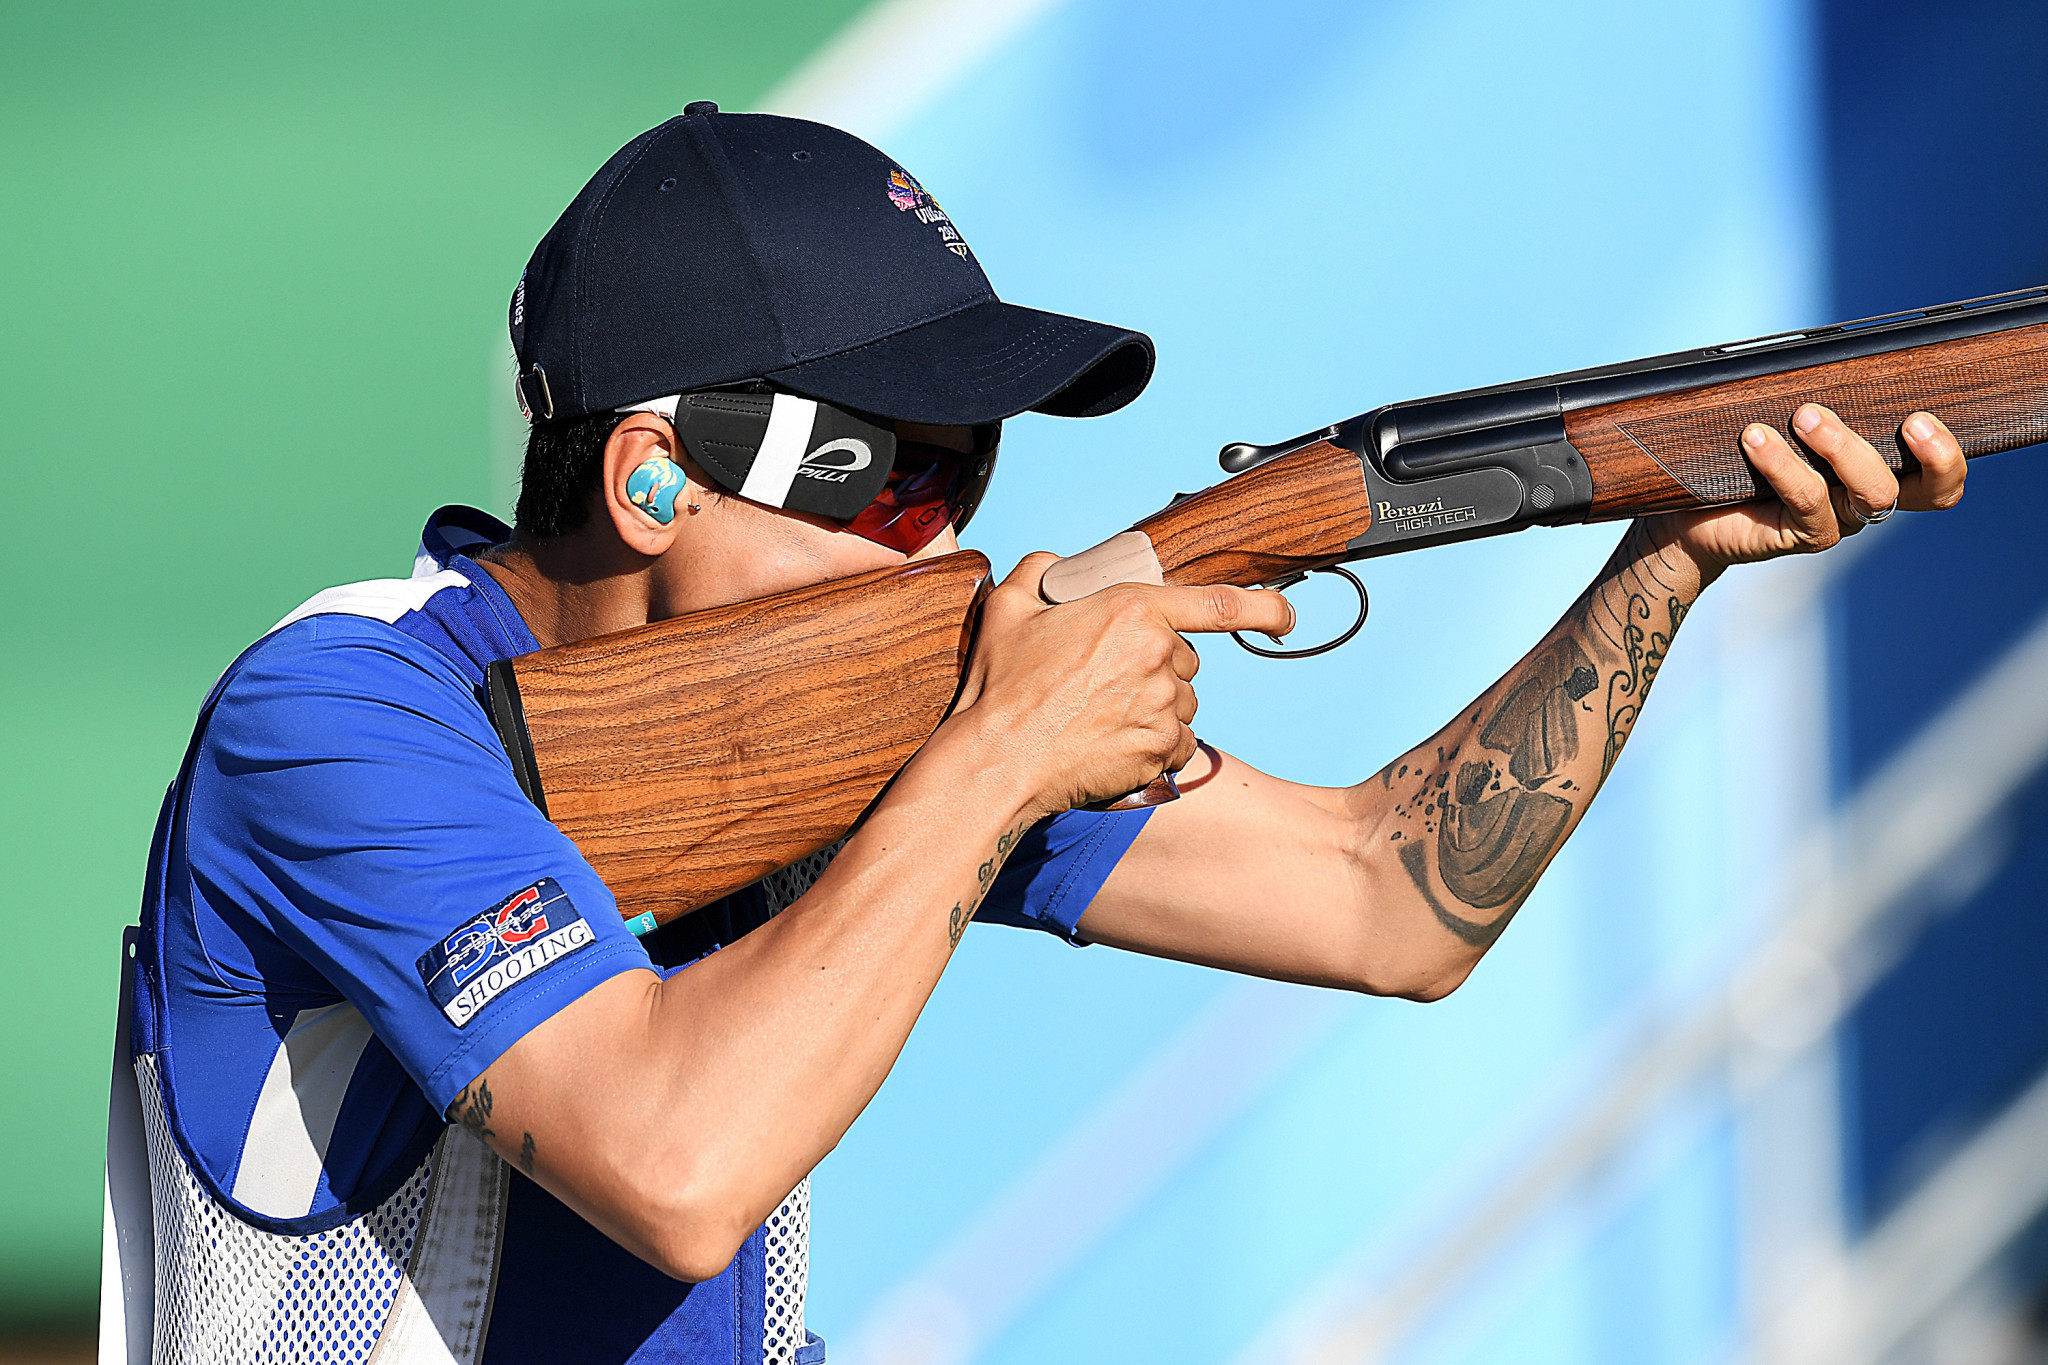 Cyprus's Andri Eleftheriou topped women's skeet qualifying at the ISSF Shotgun World Cup ©Getty Images